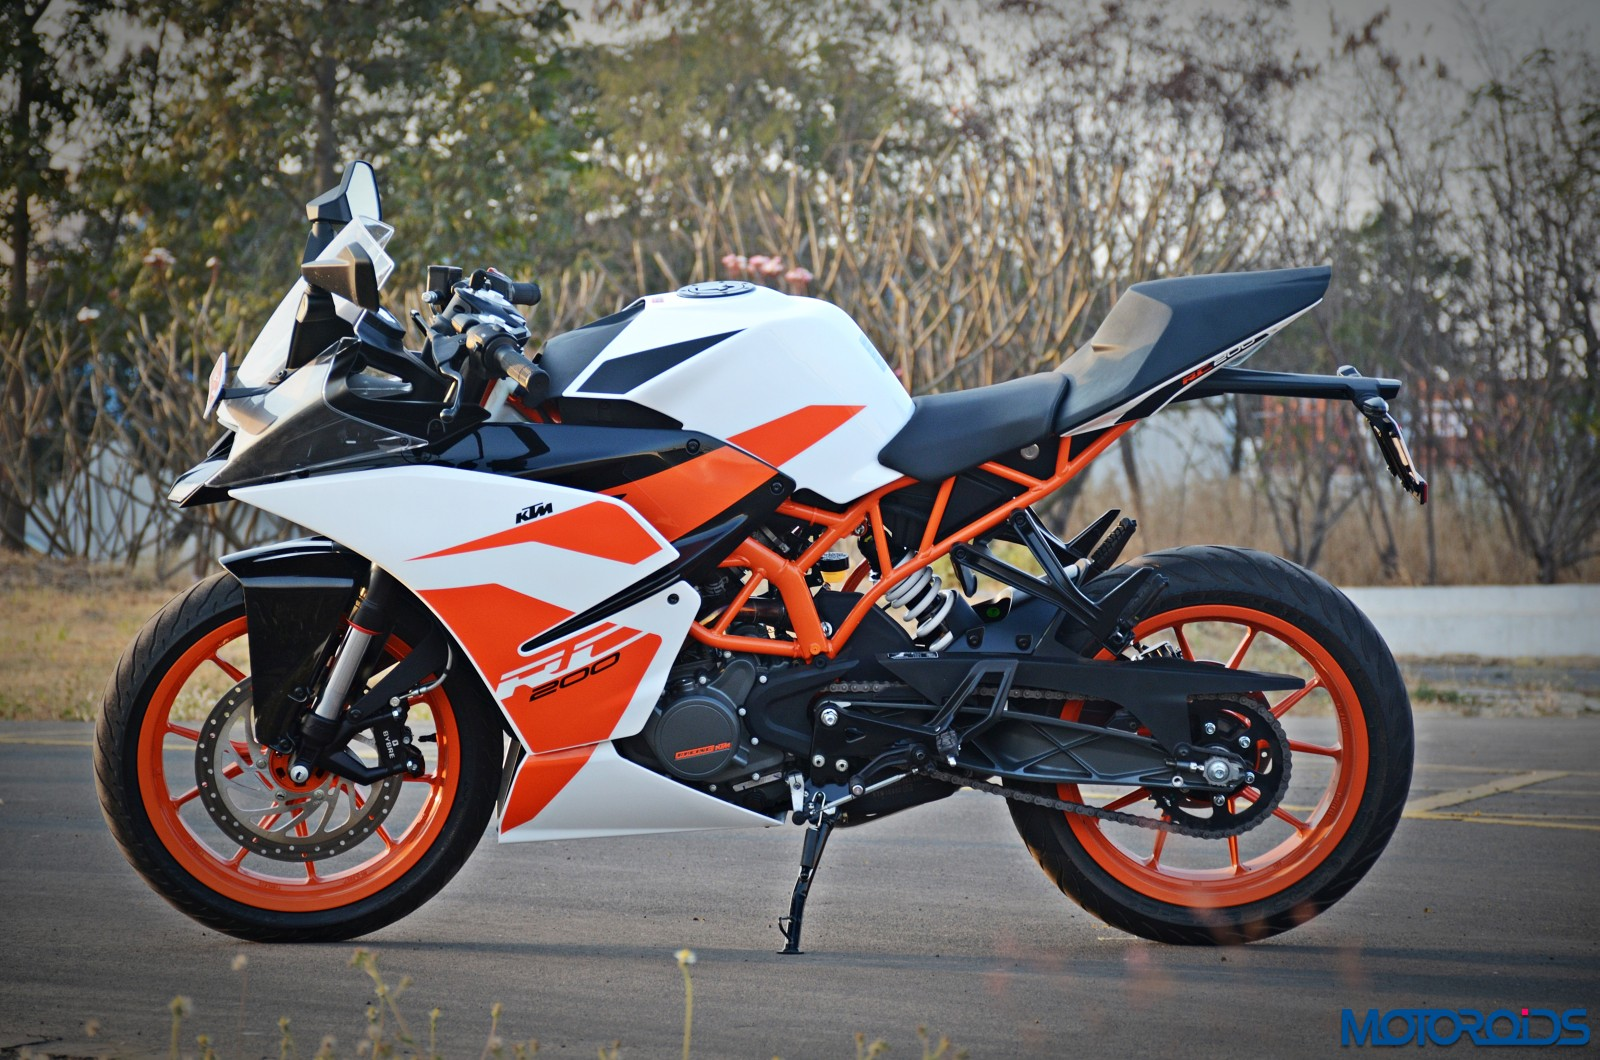 Ktm Rc 200 Price In India Specifications Images Motoroids